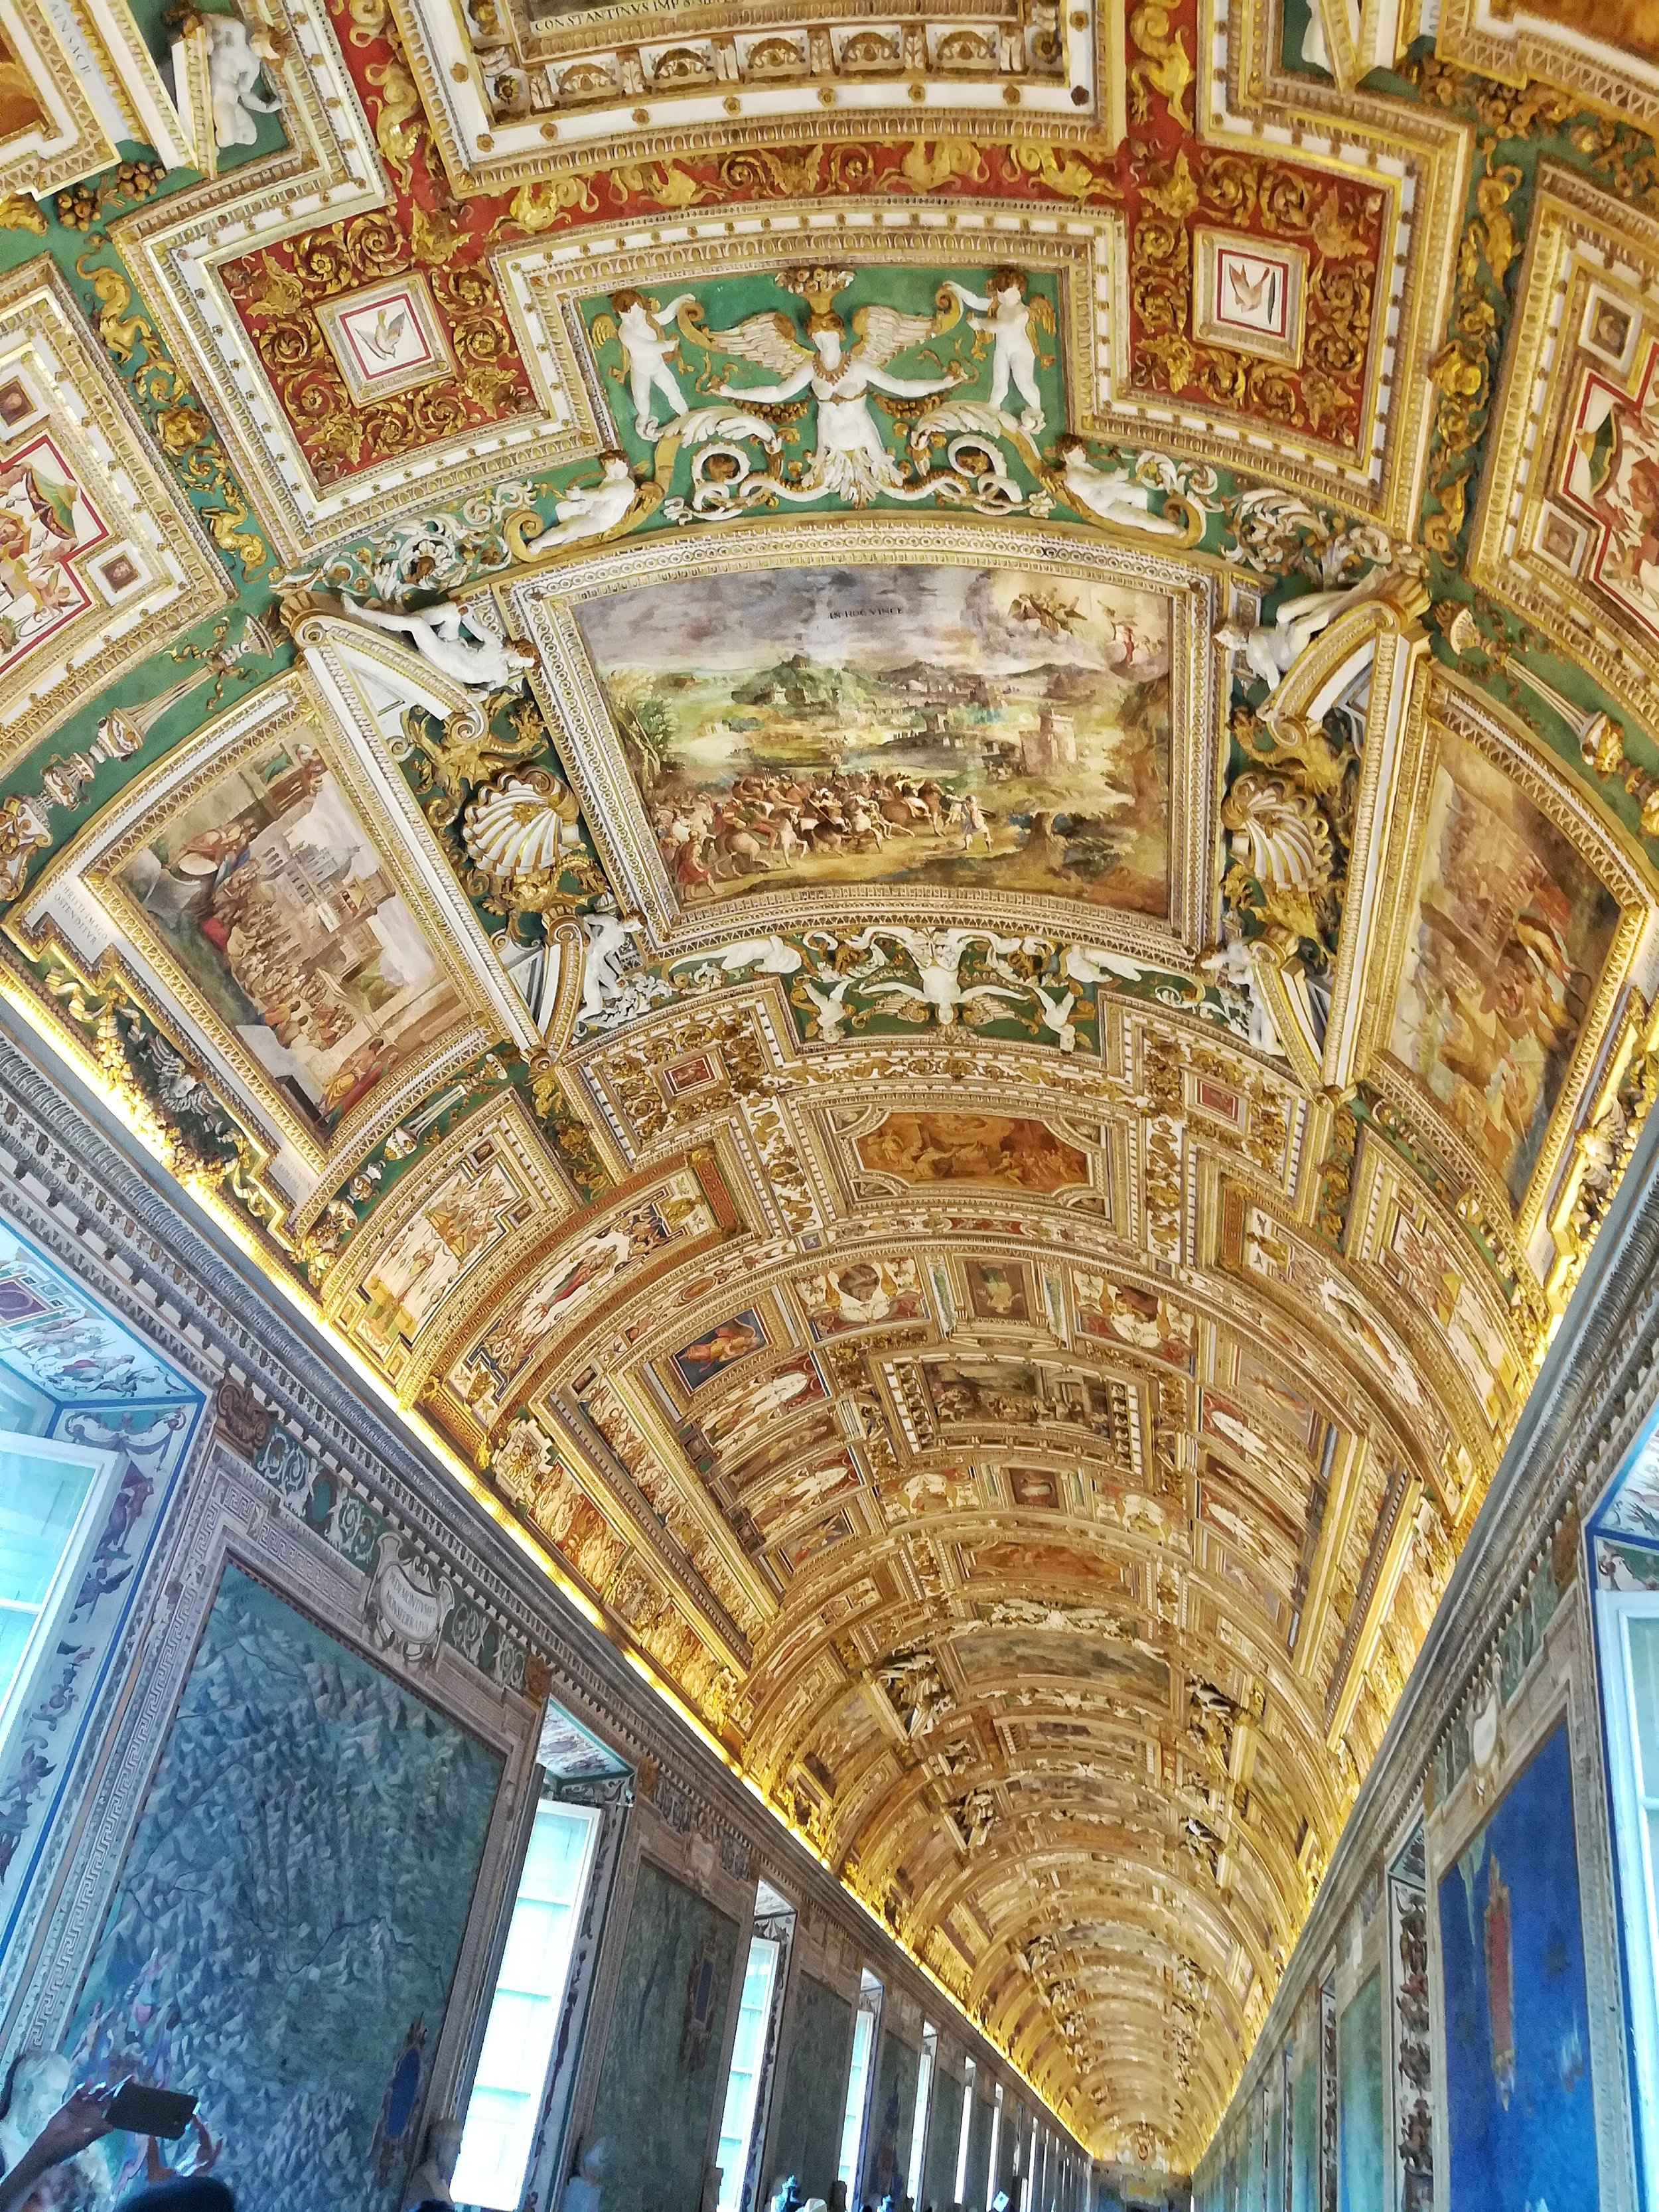 Pretty ceiling within it